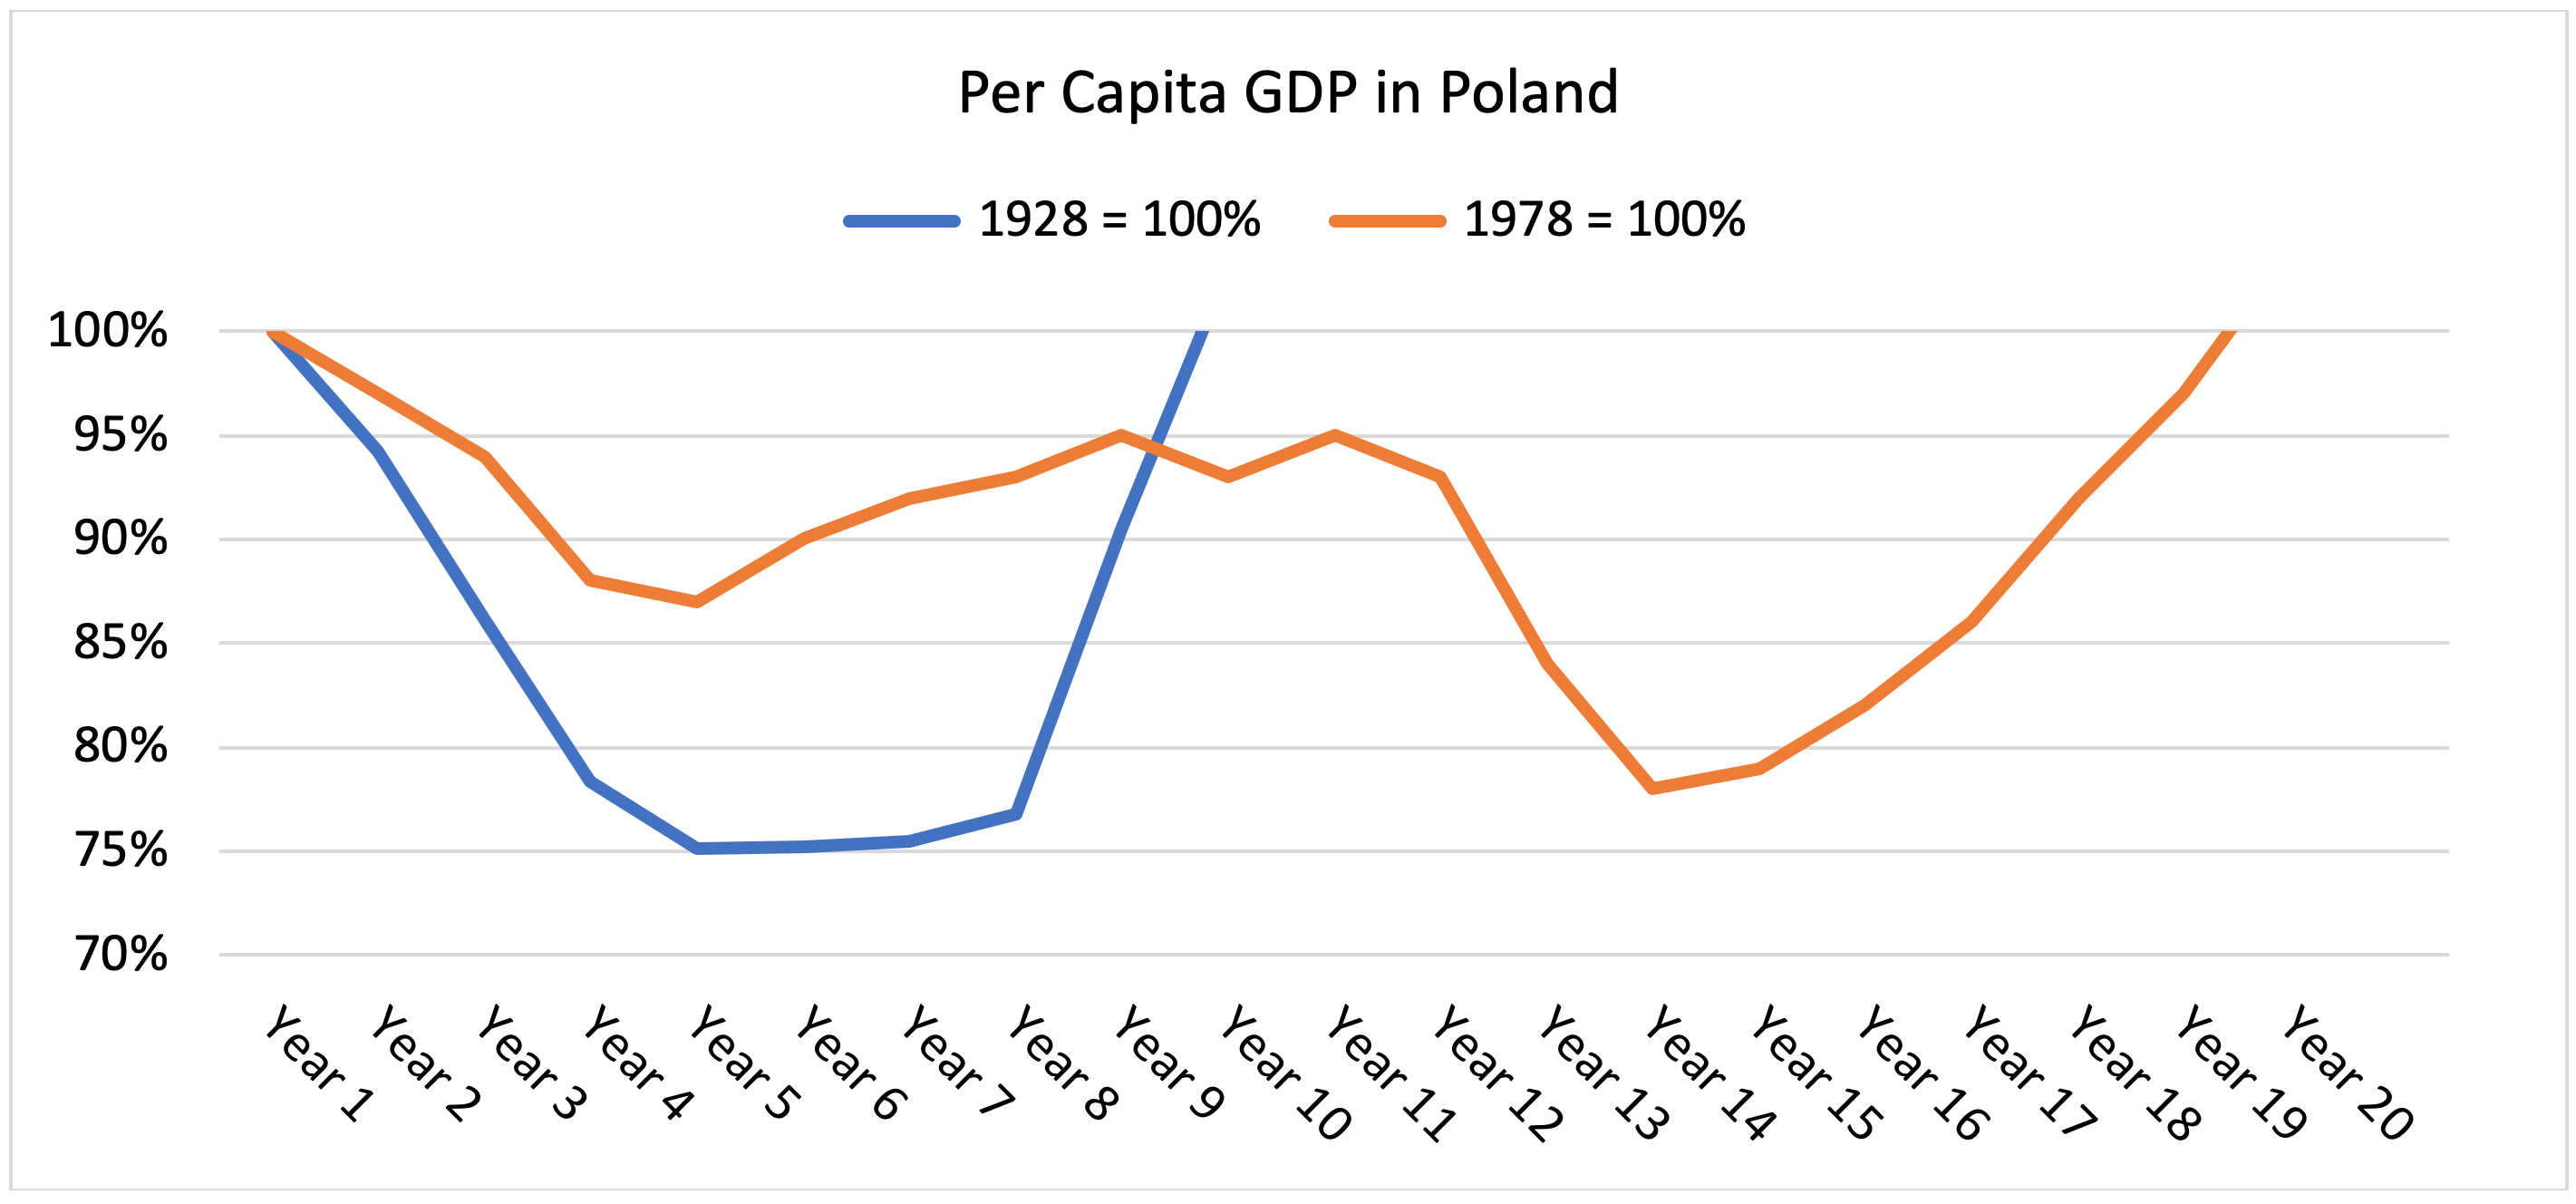 Per capita GDP in Poland after 1928 and 1978